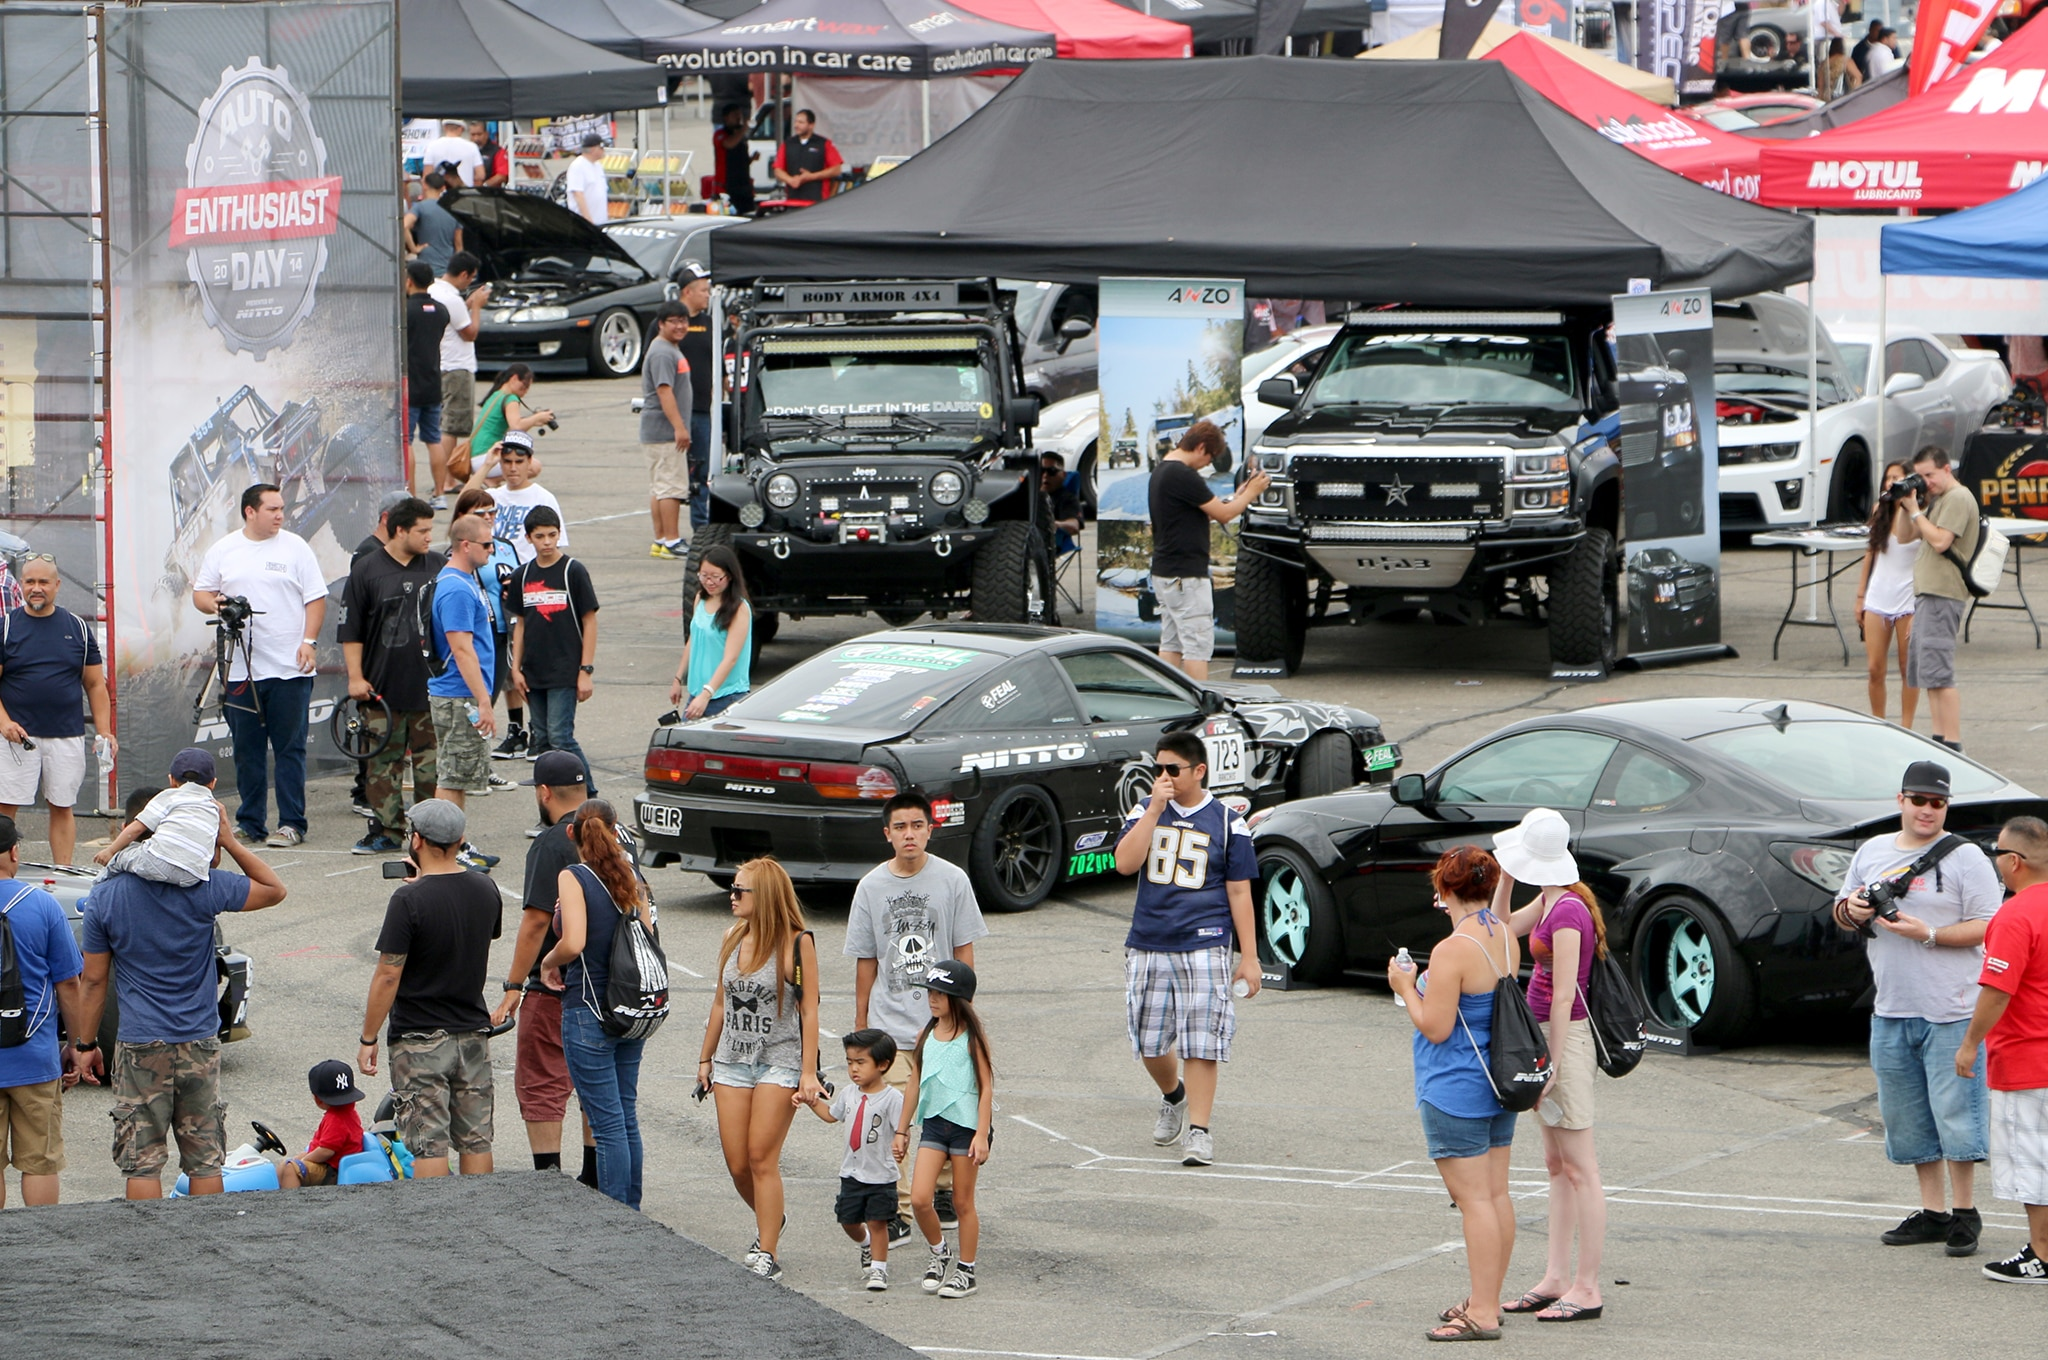 Auto Enthusiast Day Attendees